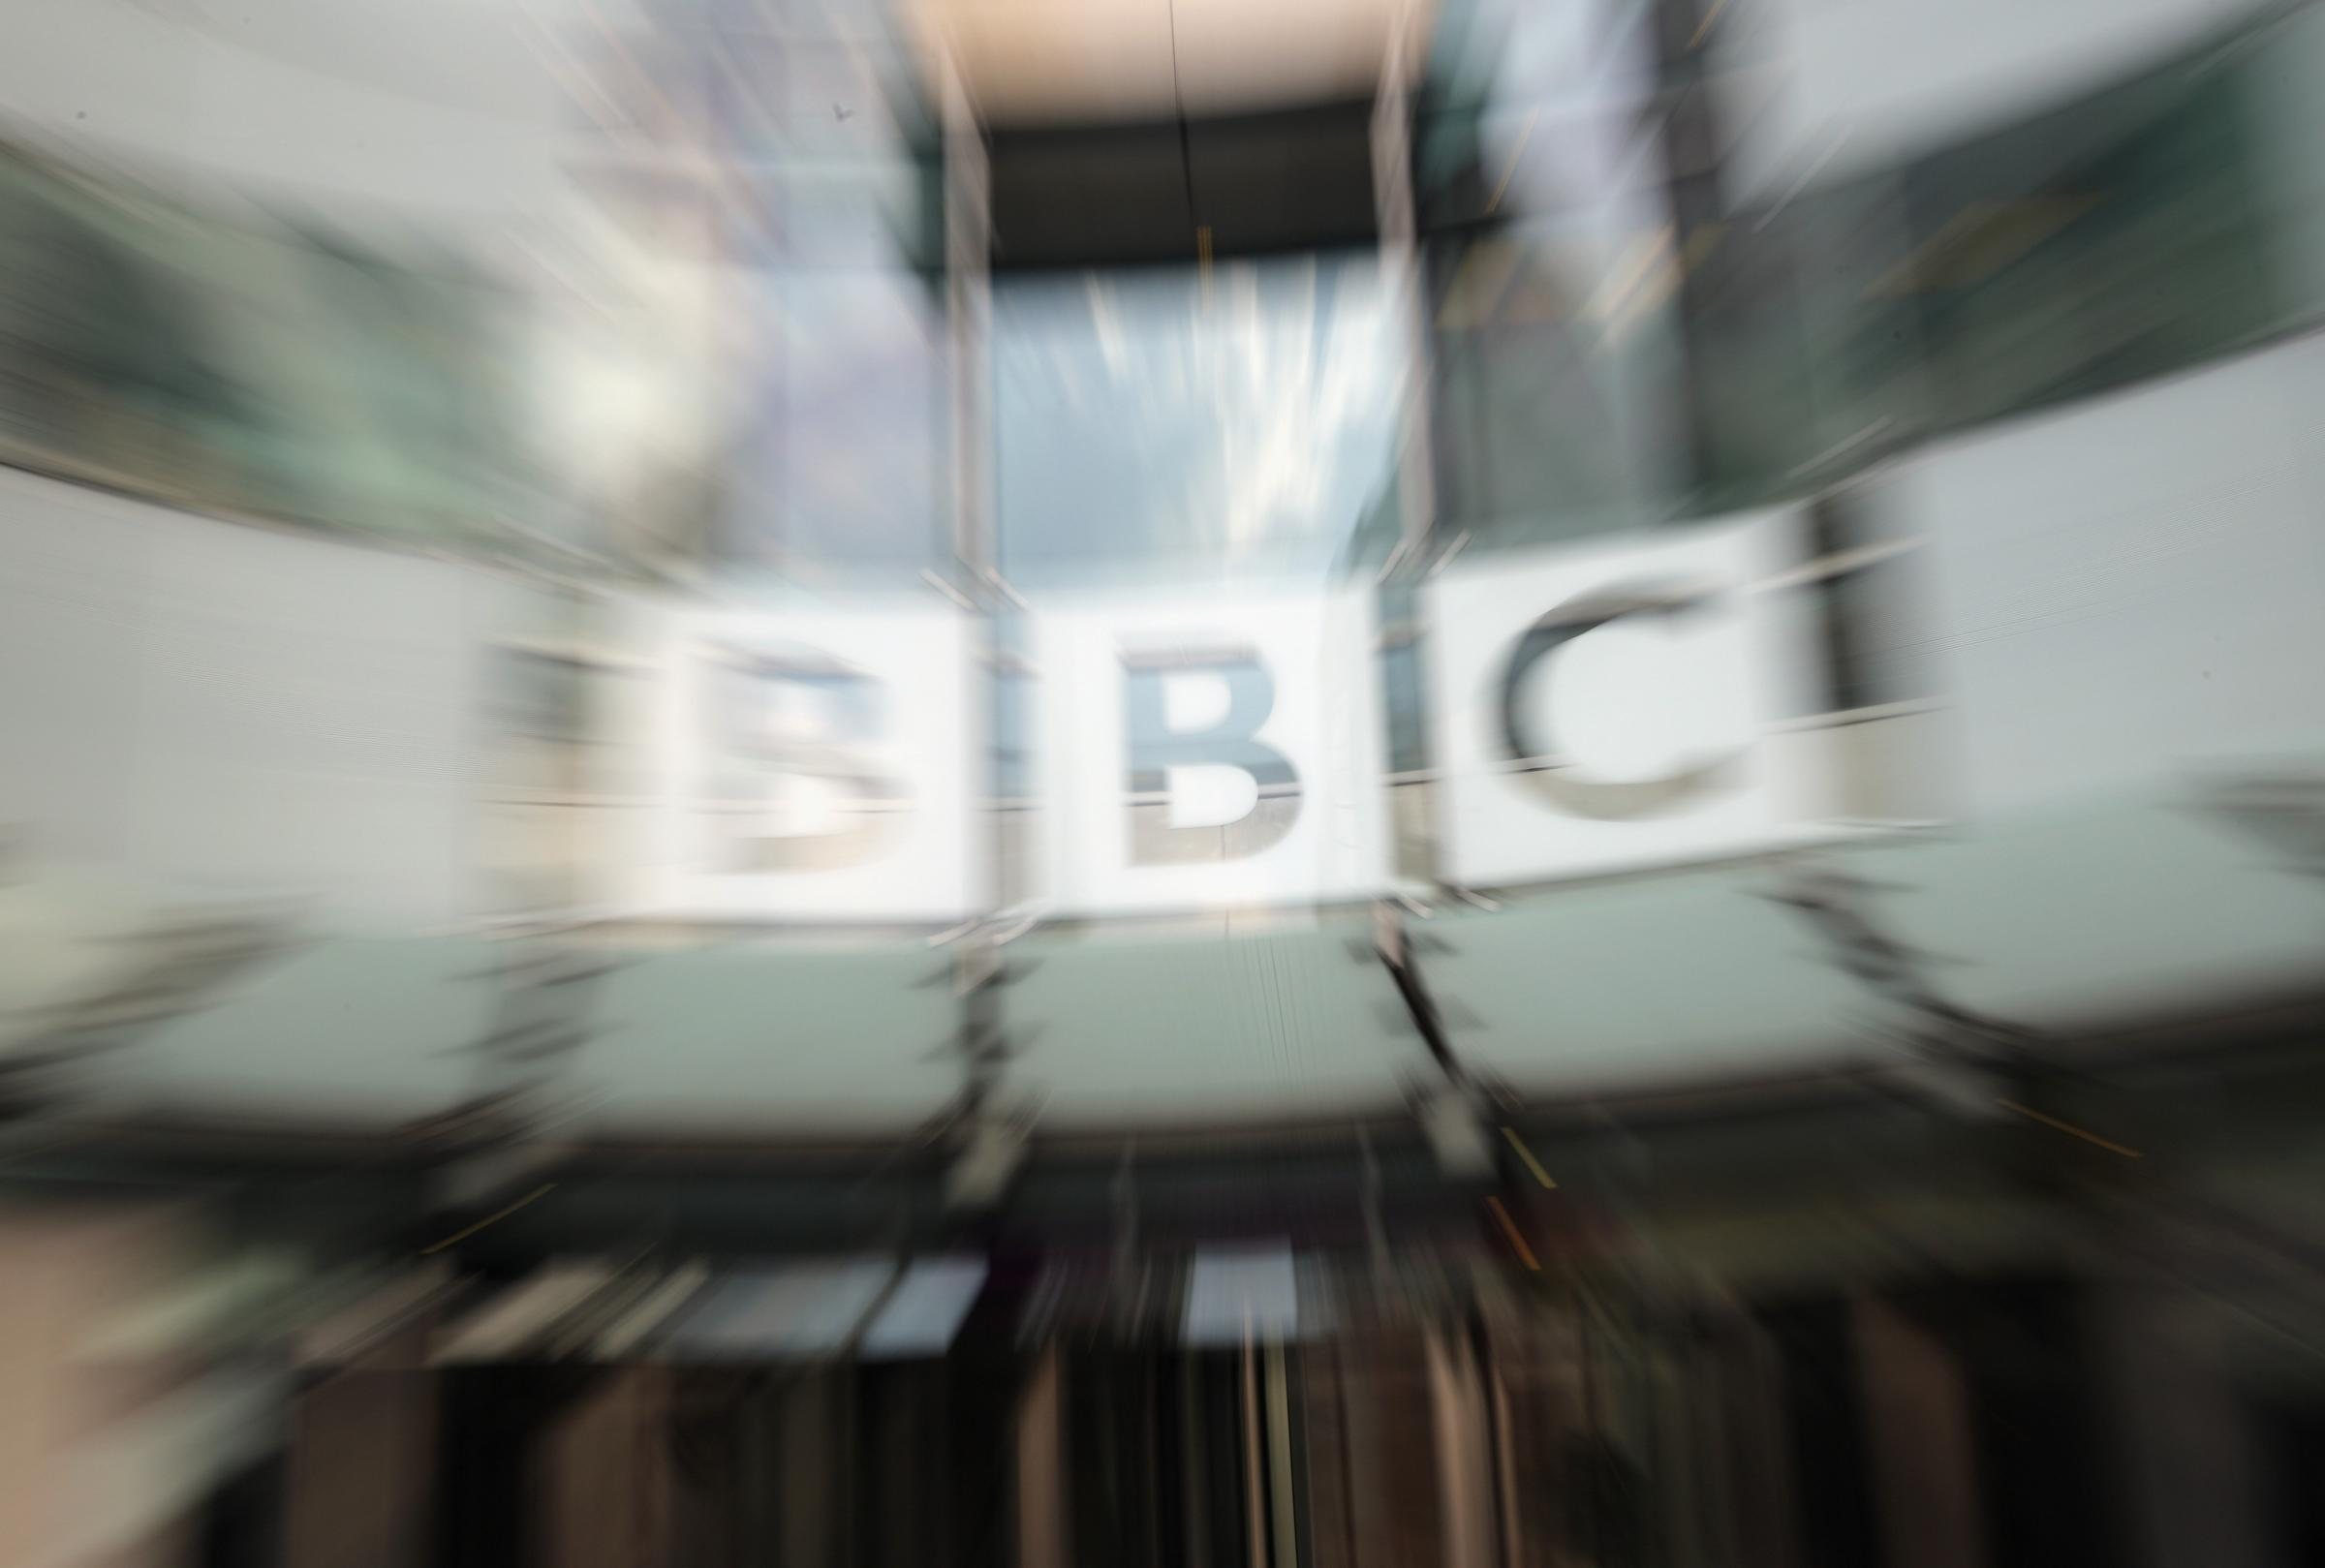 The BBC has been left in a spin by the backlash over its copyright takedowns